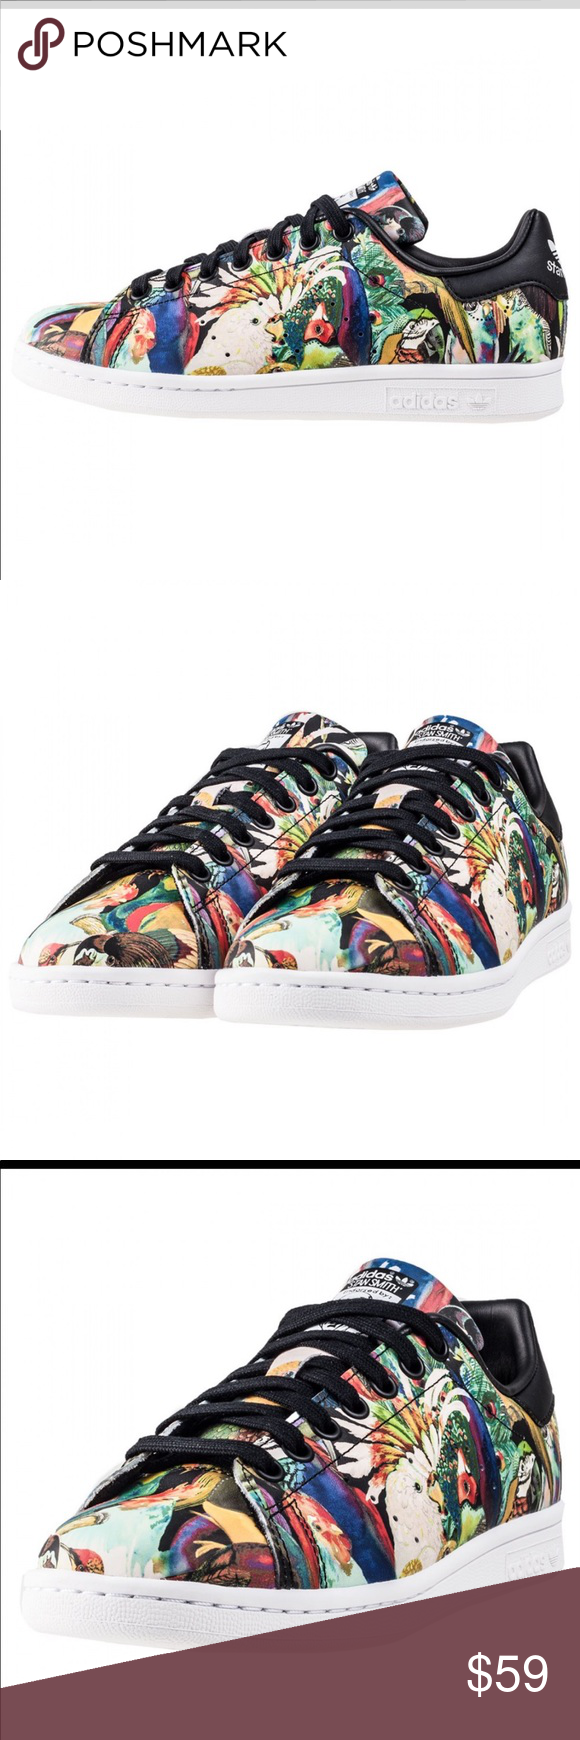 los angeles a4c6c 03512 Adidas Stan Smith parrot design Brand new never worn Adidas ...